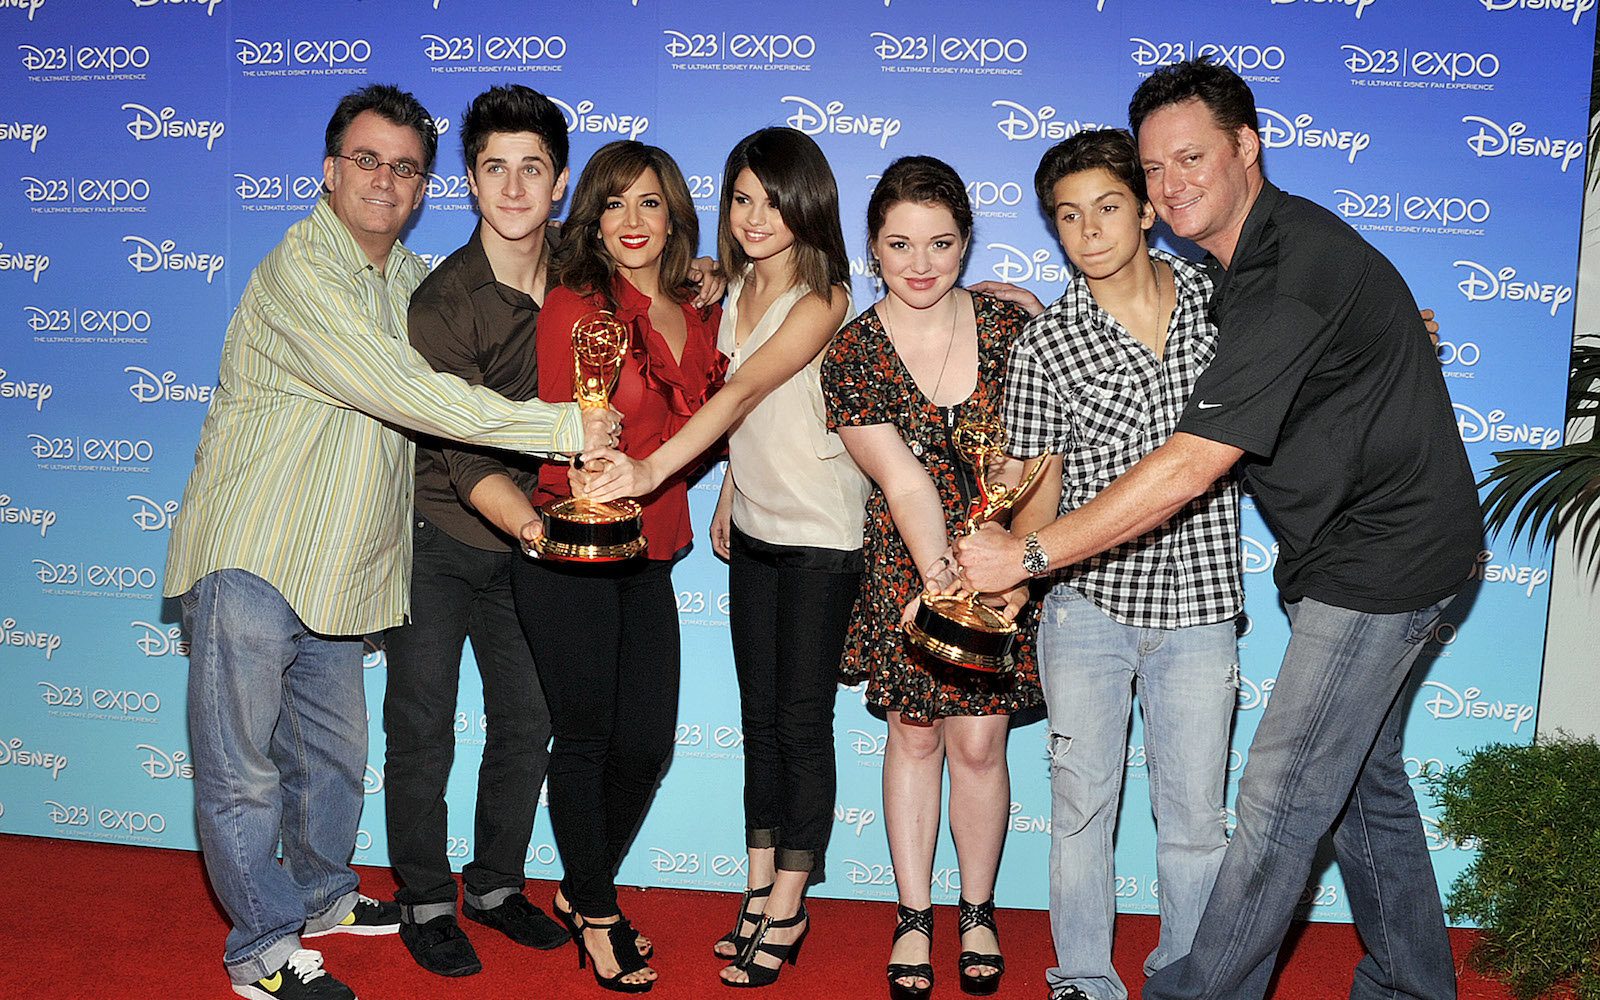 The Executive Producers and the cast of 'Wizards of Waverly Place' Executive Producer Peter Murietta, actors David Henrie, Maria Canals-Barrera, Selena Gomez, Jennifer Stone, Jake T. Austin and Executive Producer Todd J. Greenwald